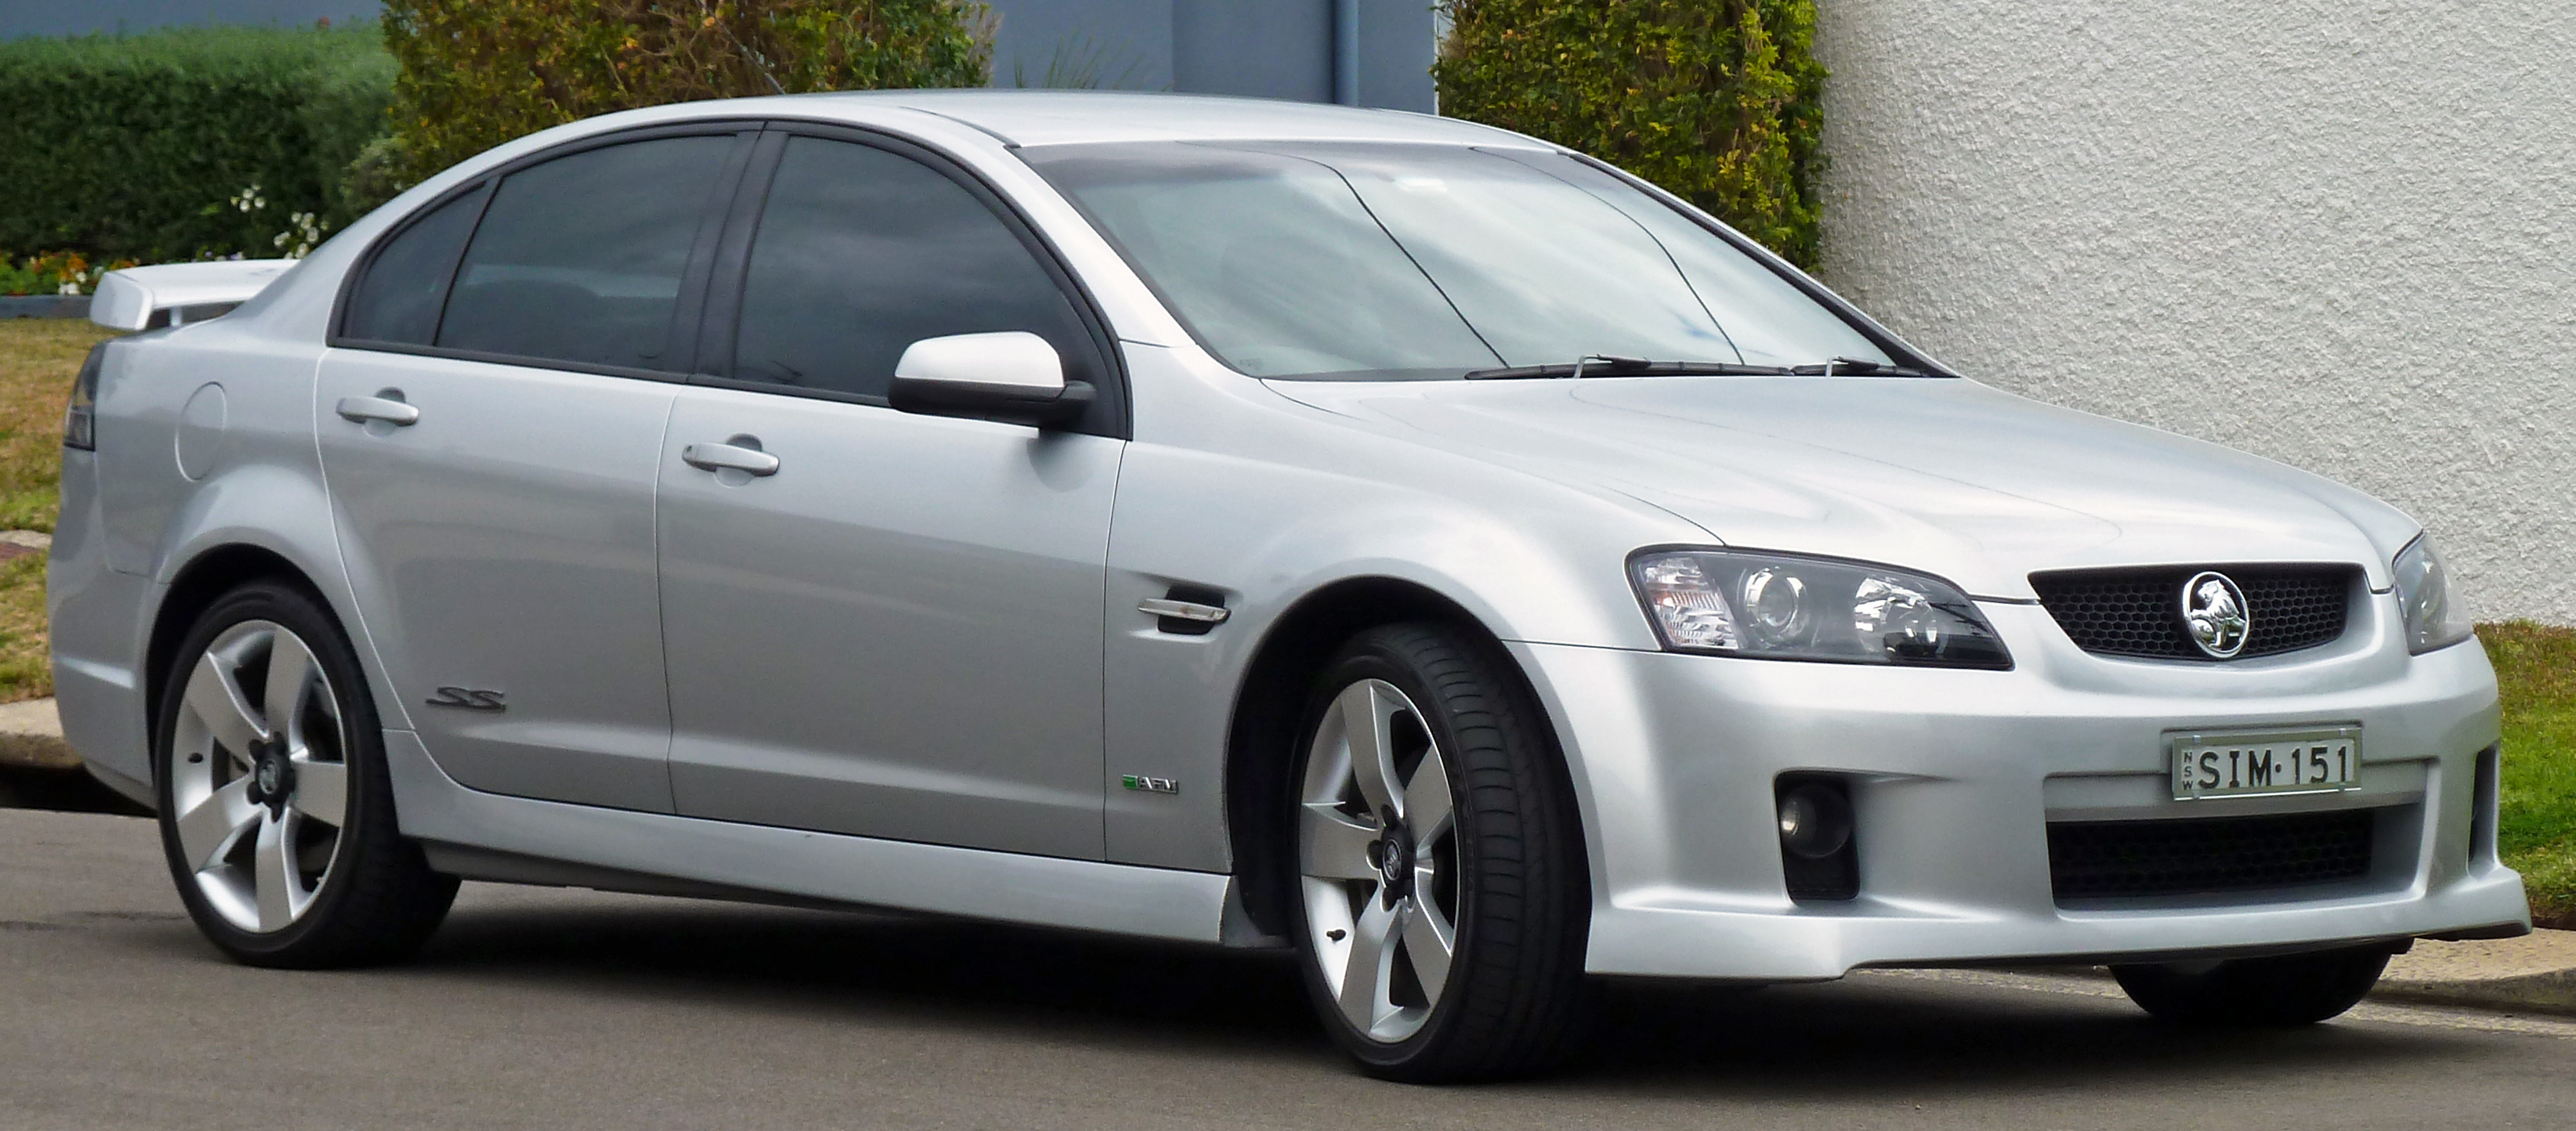 2009 holden commodore omega ve sedan sell my car sell my car buy my car. Black Bedroom Furniture Sets. Home Design Ideas